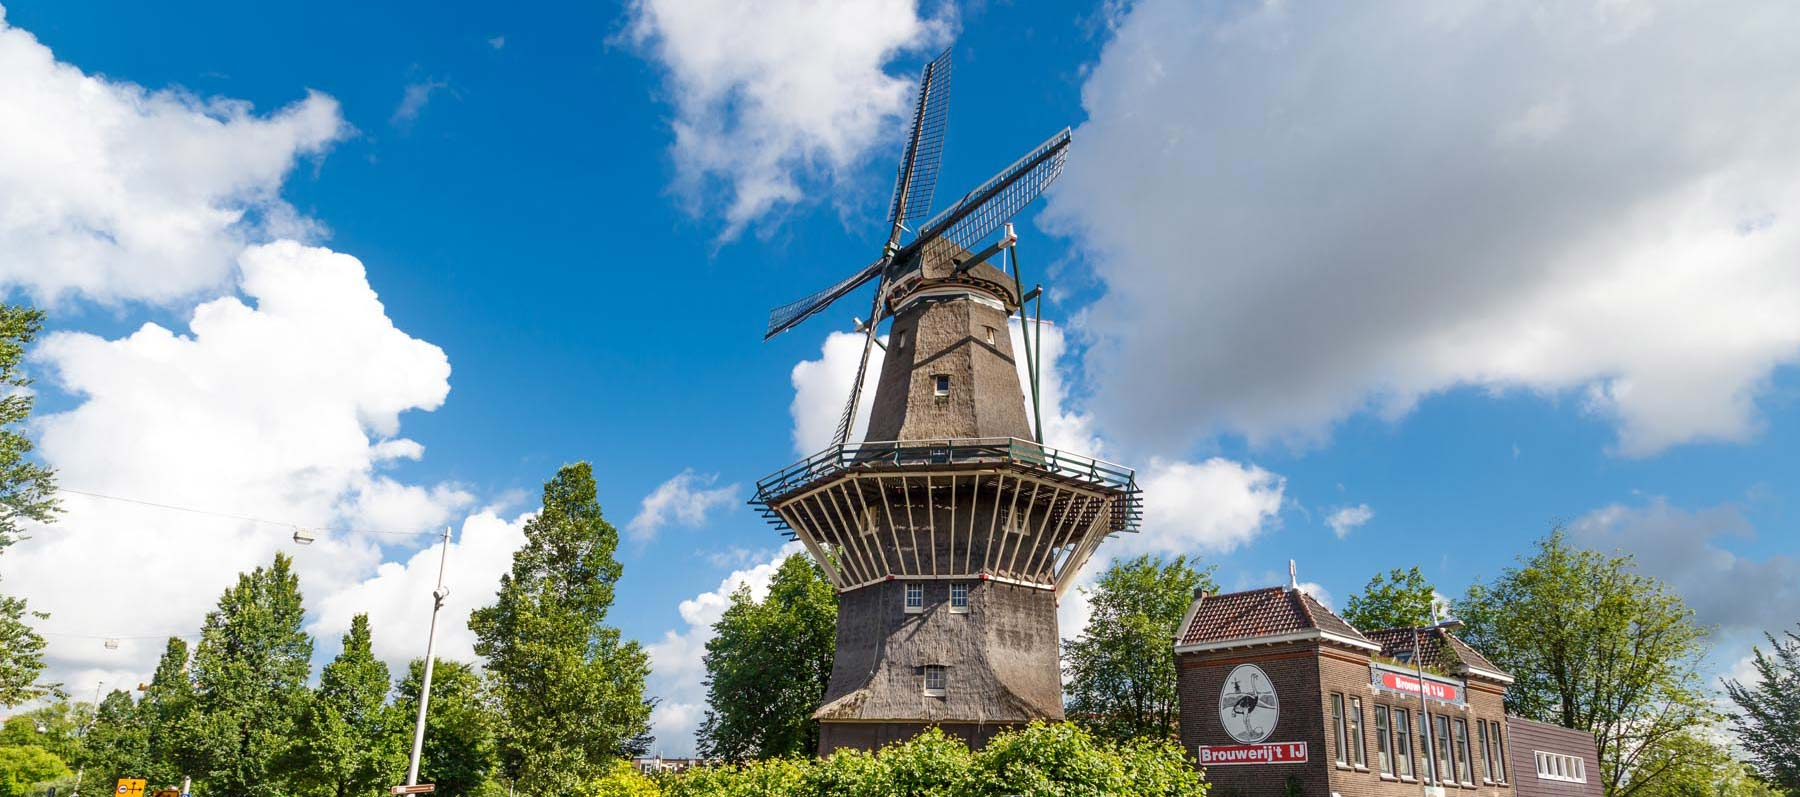 bigstock-De-Gooyer-Windmill-182401285